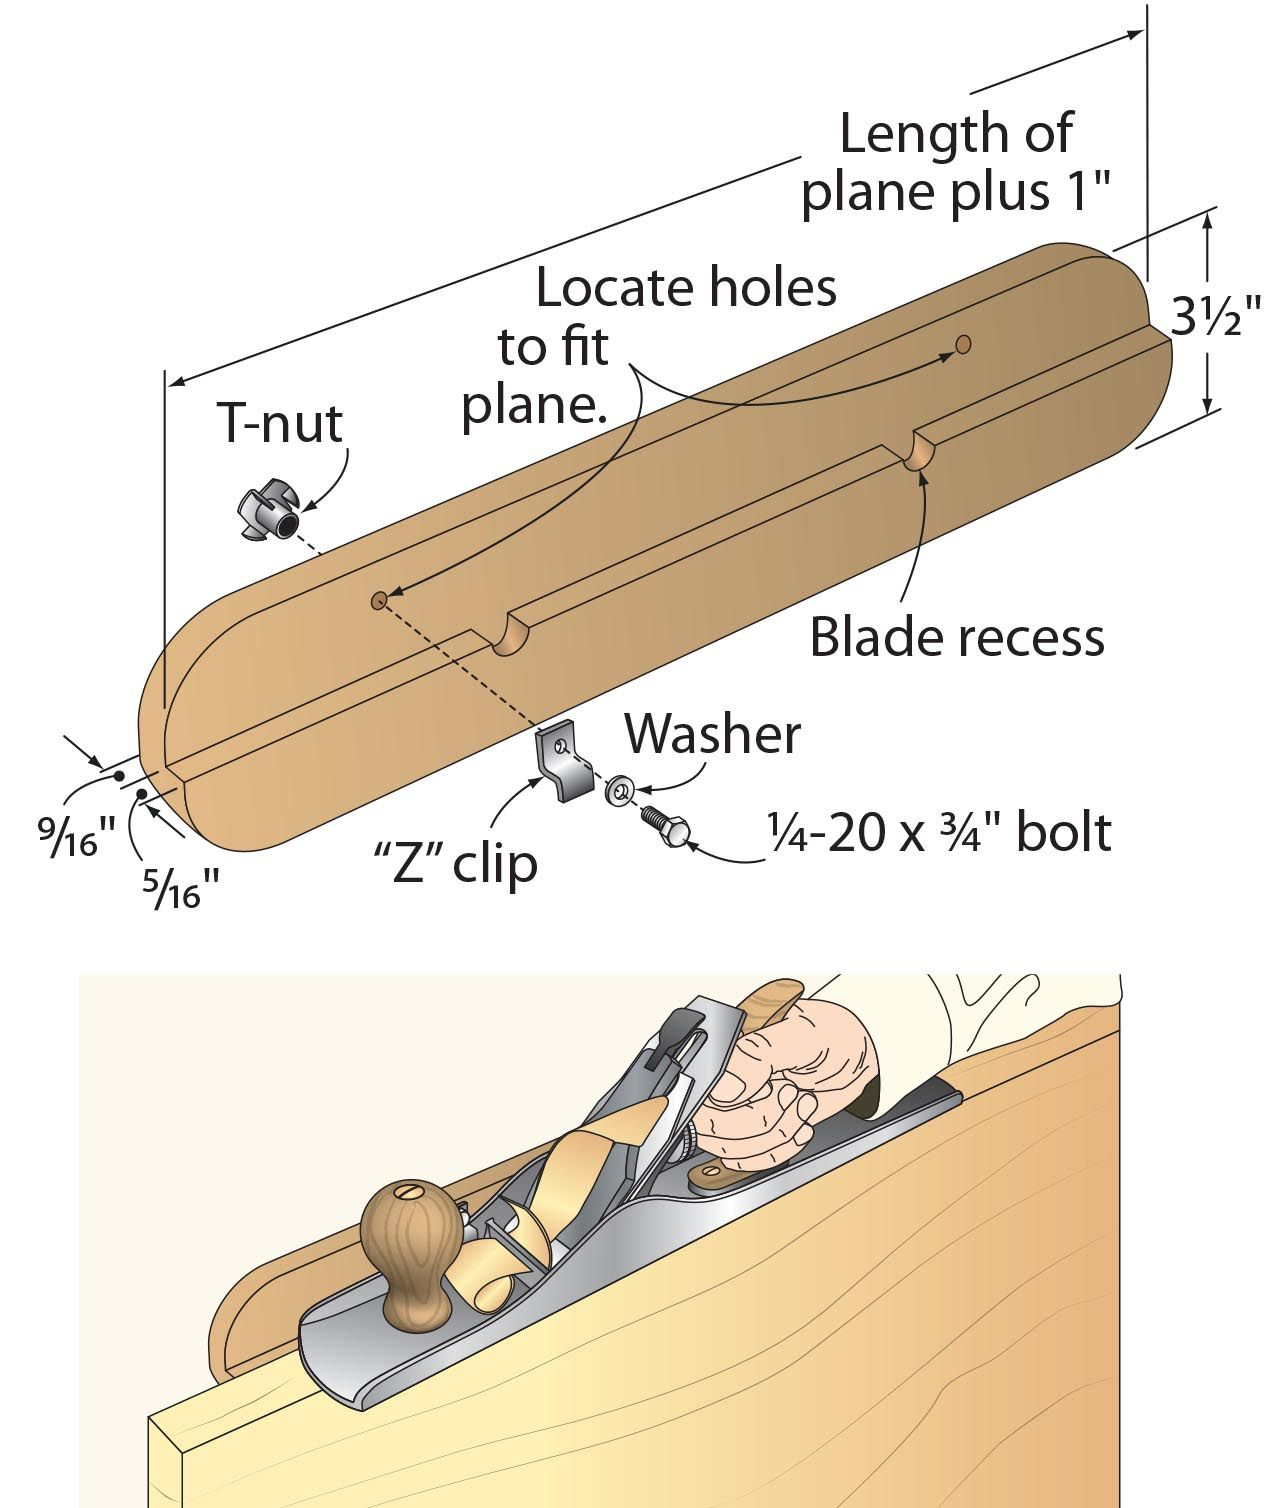 Easy On Easy Off Fence Keeps Plane Square Woodworking Hand Tools Woodworking Techniques Woodworking Hand Planes